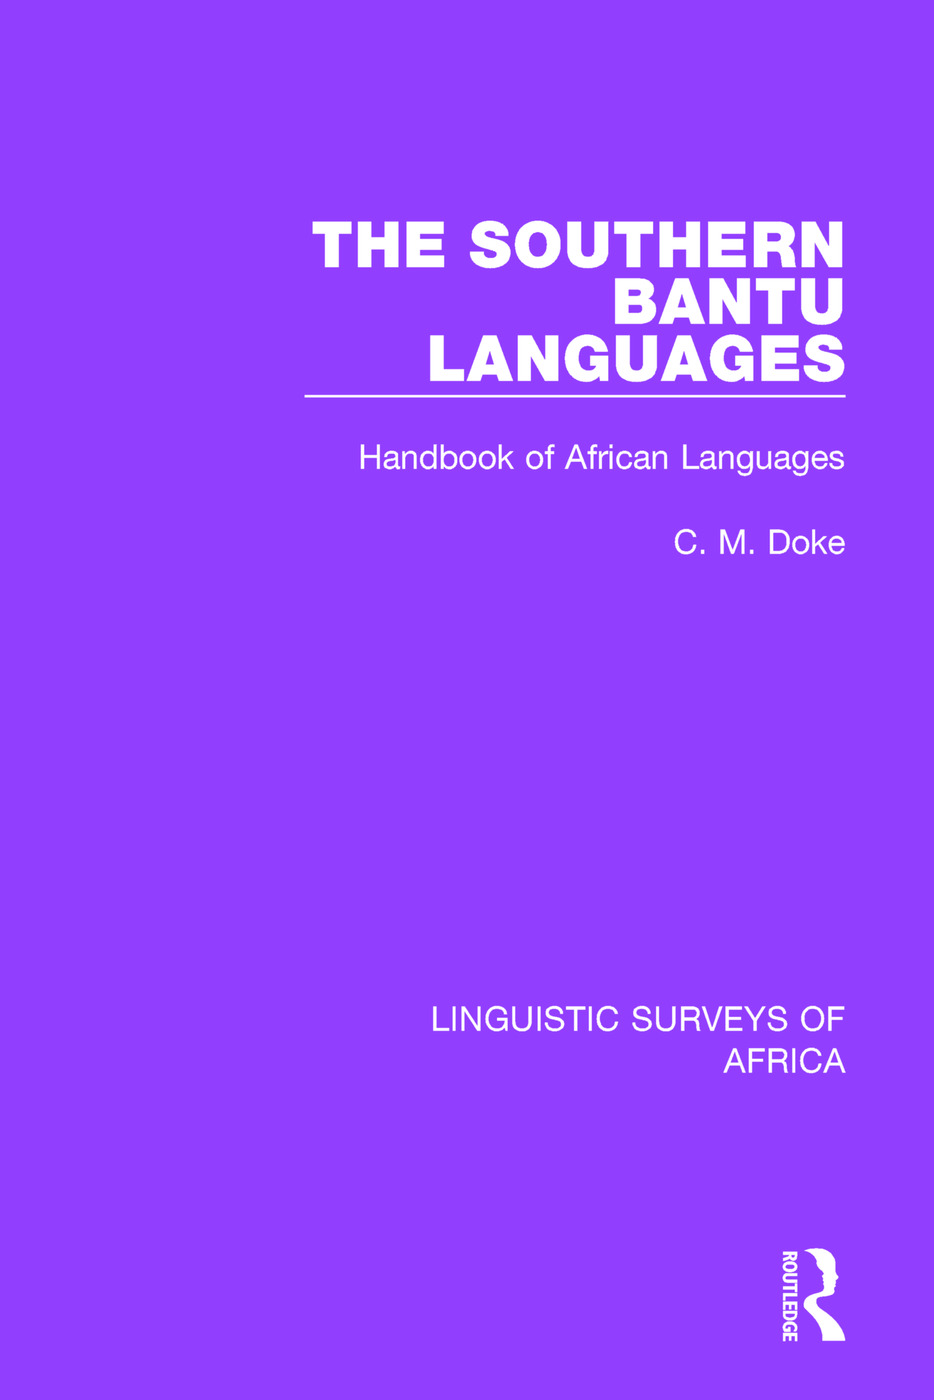 The Southern Bantu Languages: Handbook of African Languages book cover